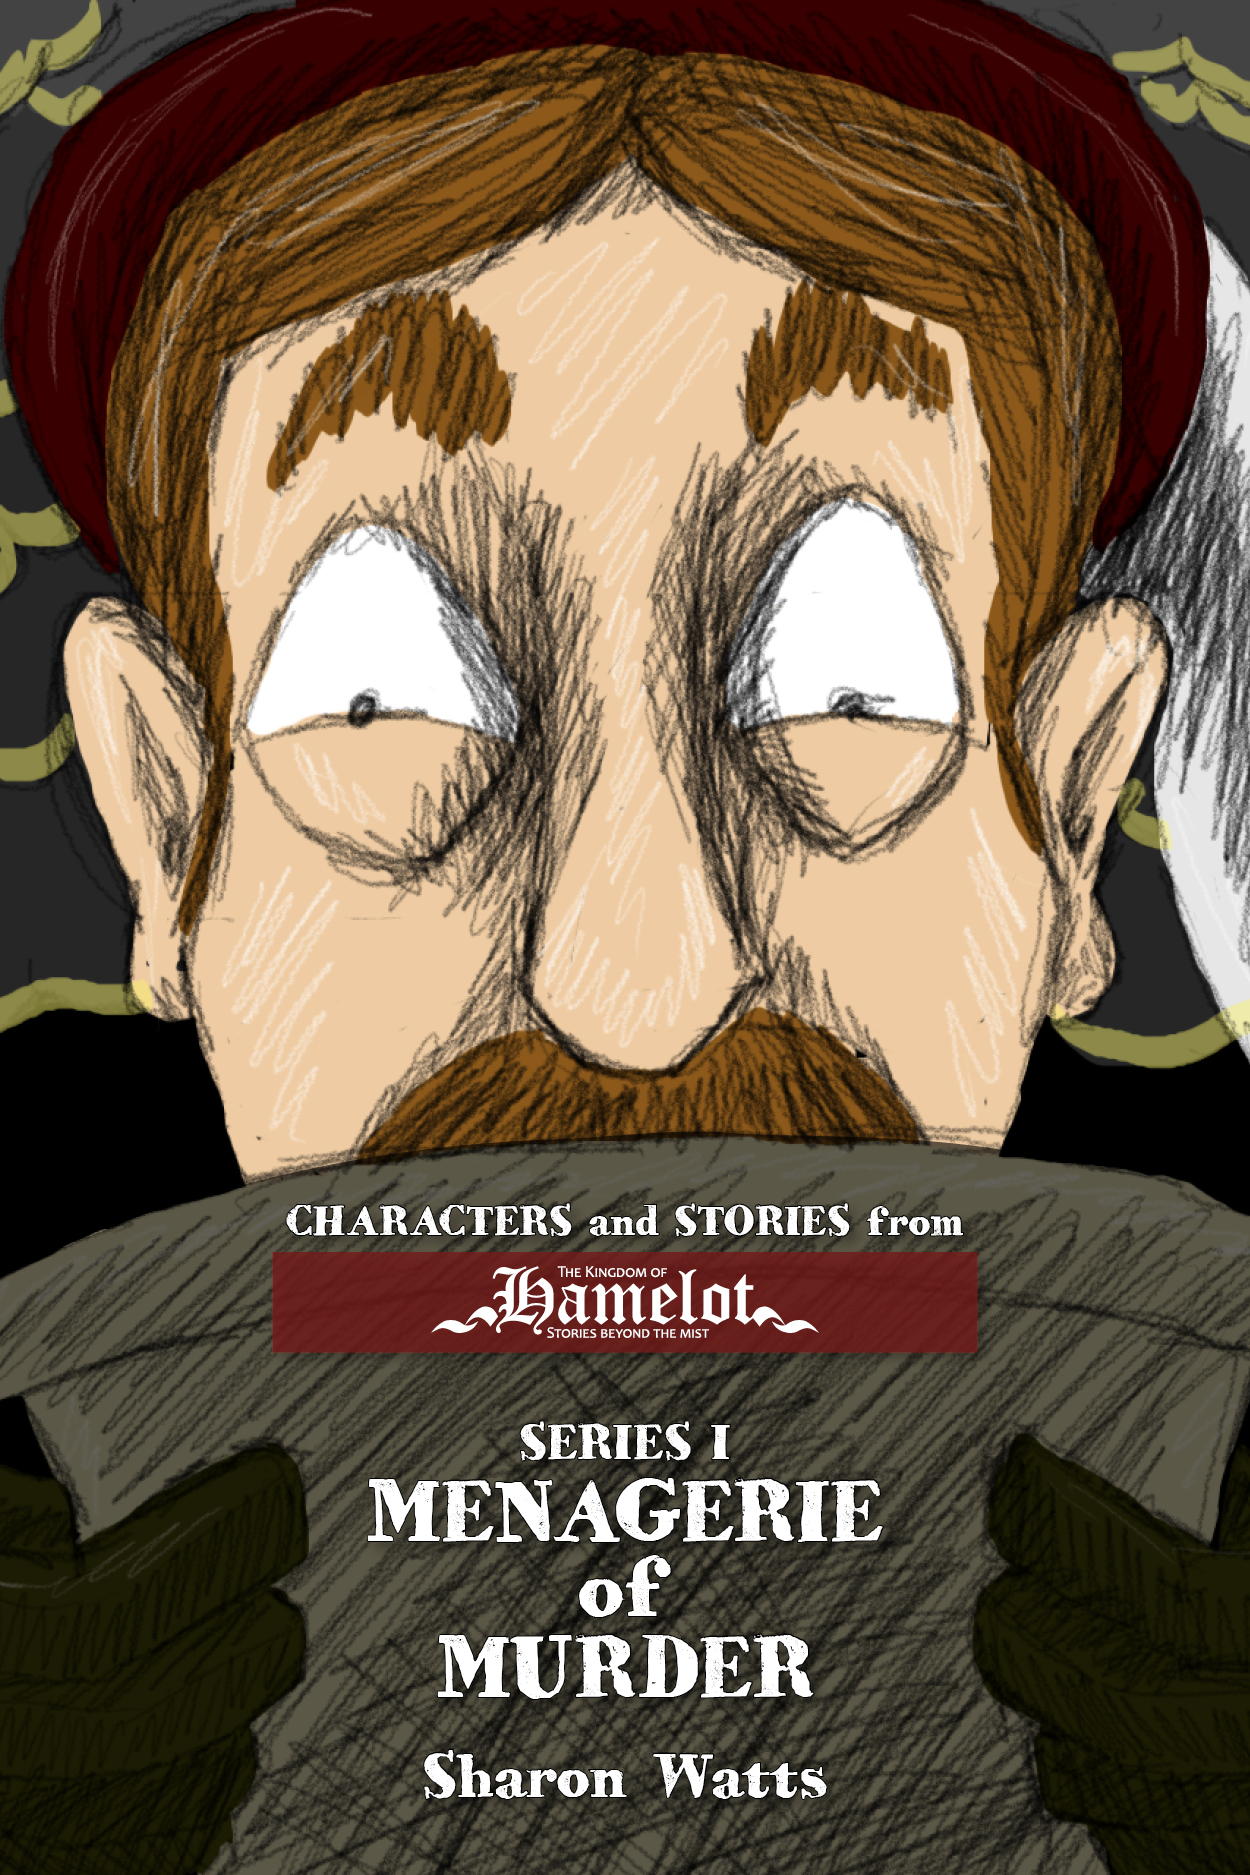 Kingdom of Hamelot Series I: Menagerie of Murder